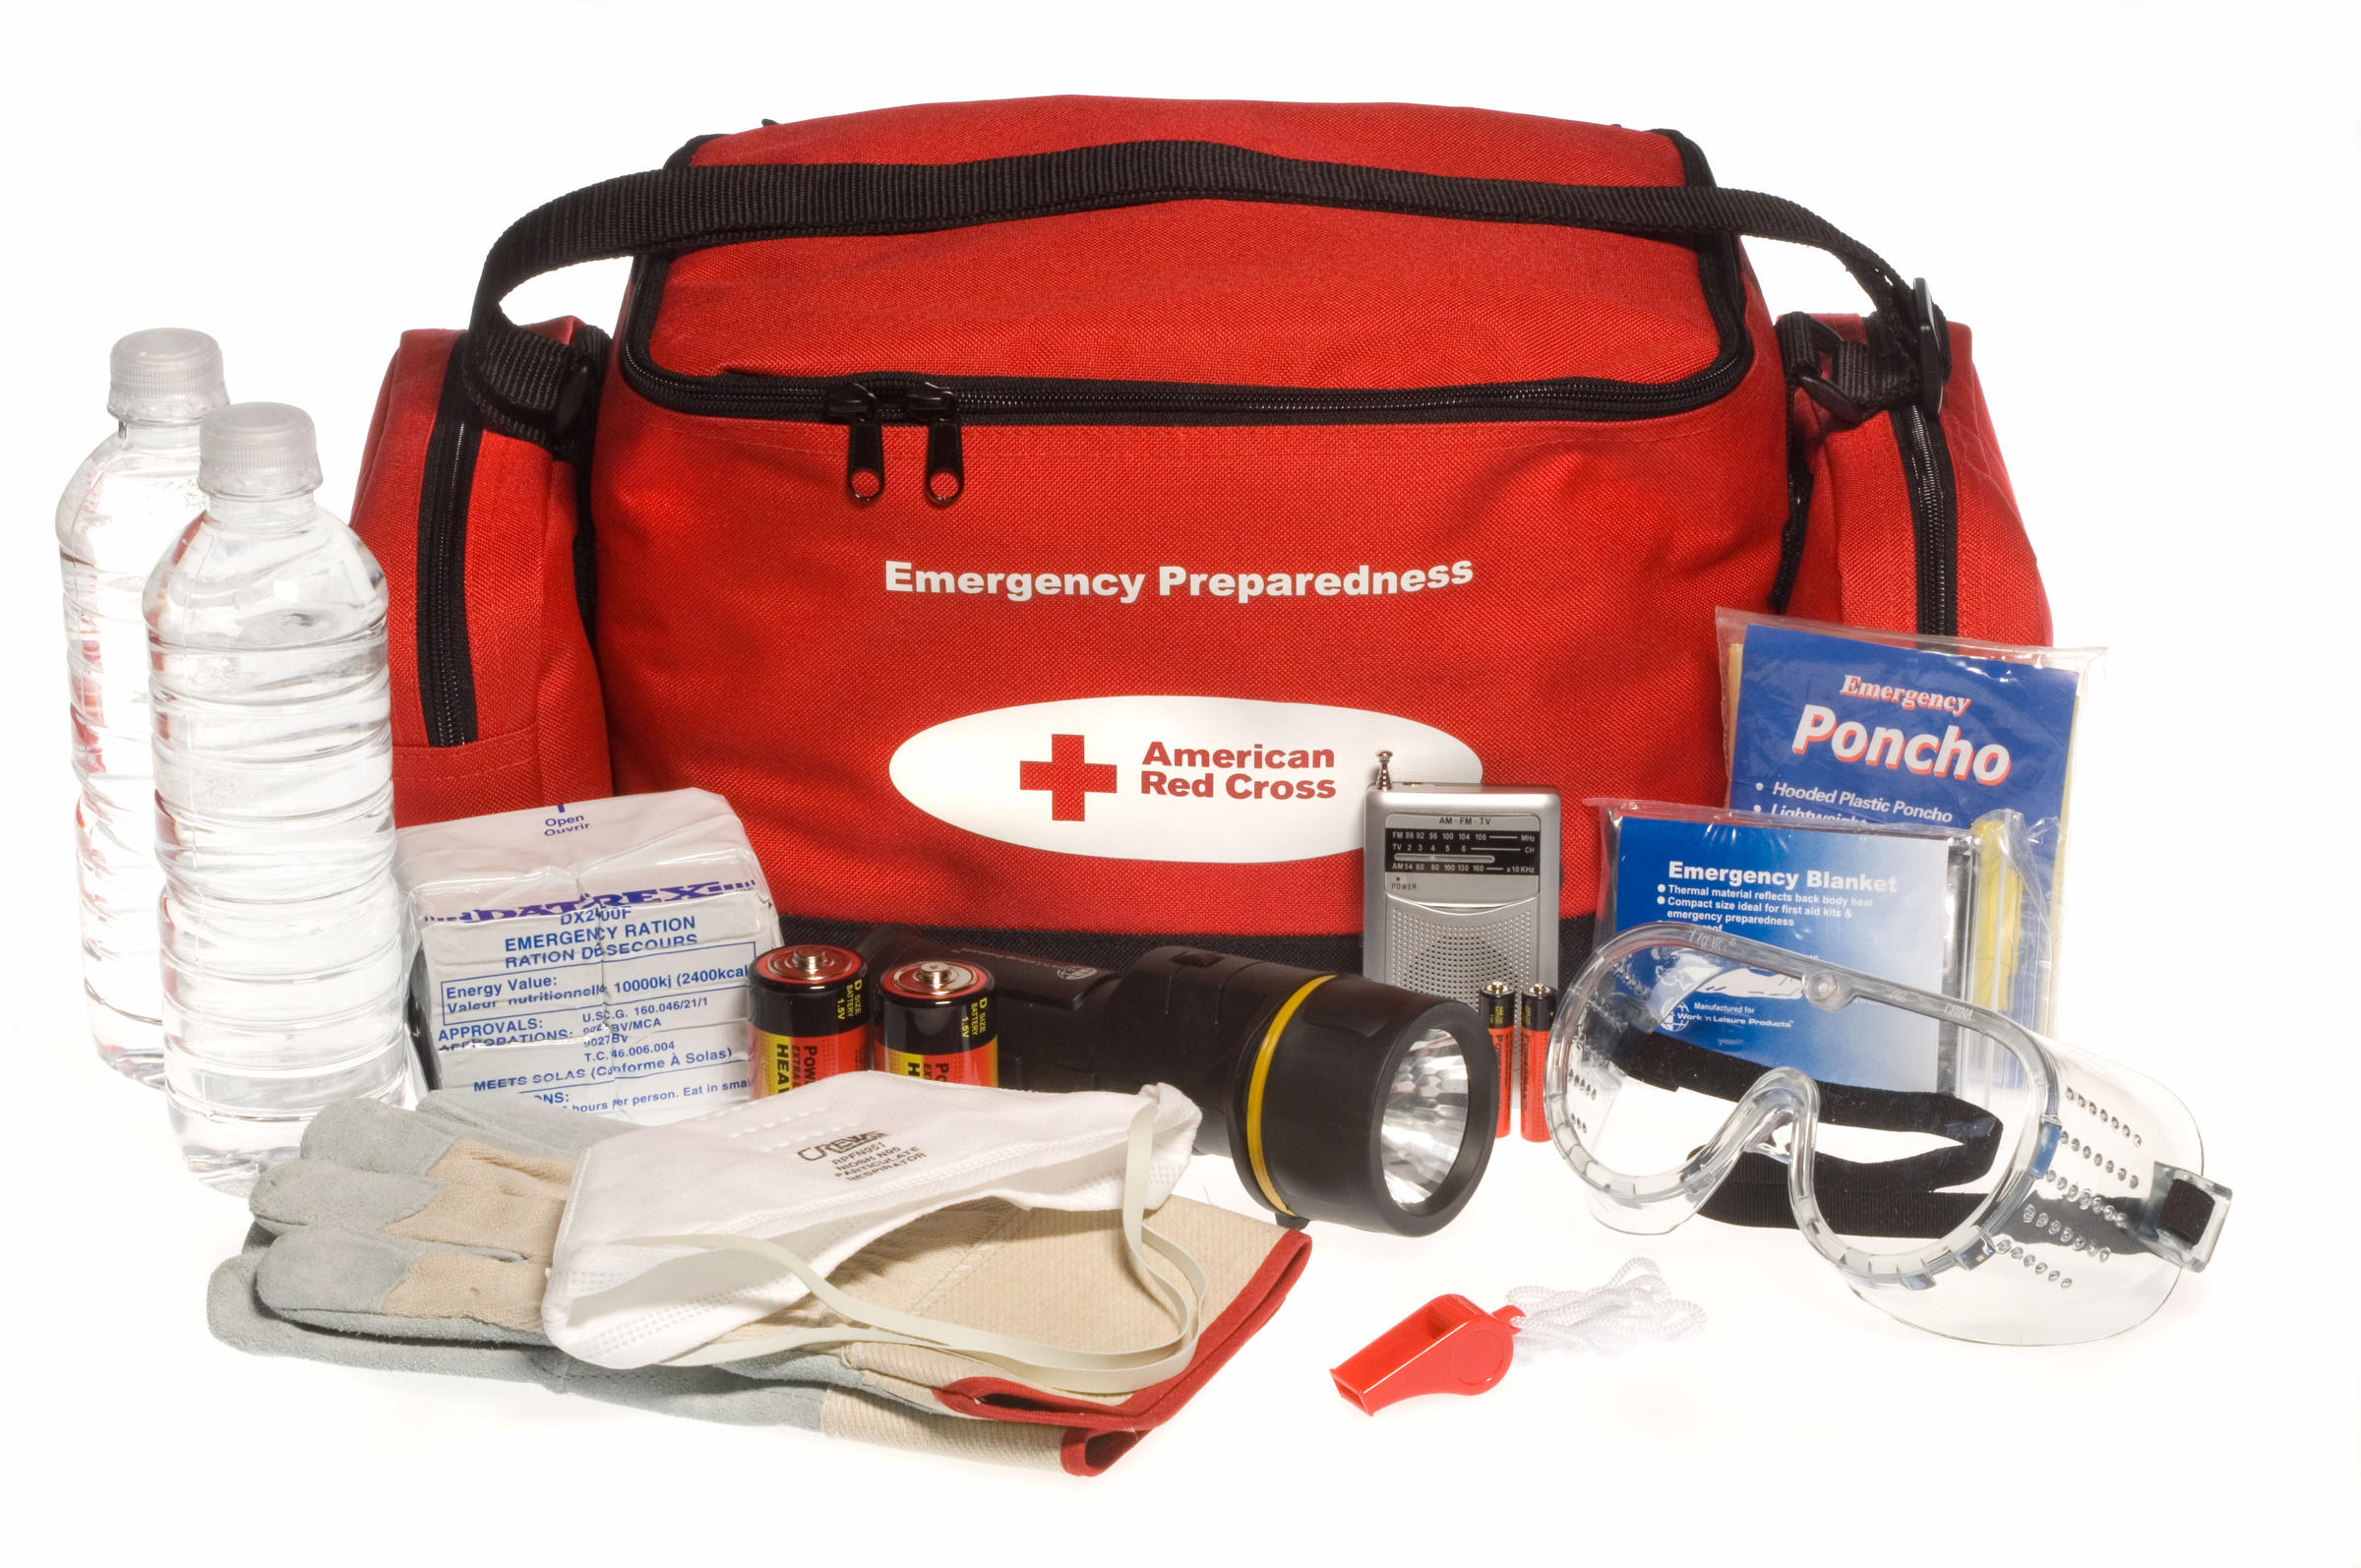 Earthquake Safety Part 3 An Emergency Kit Is Easy Way To Be More Prepared